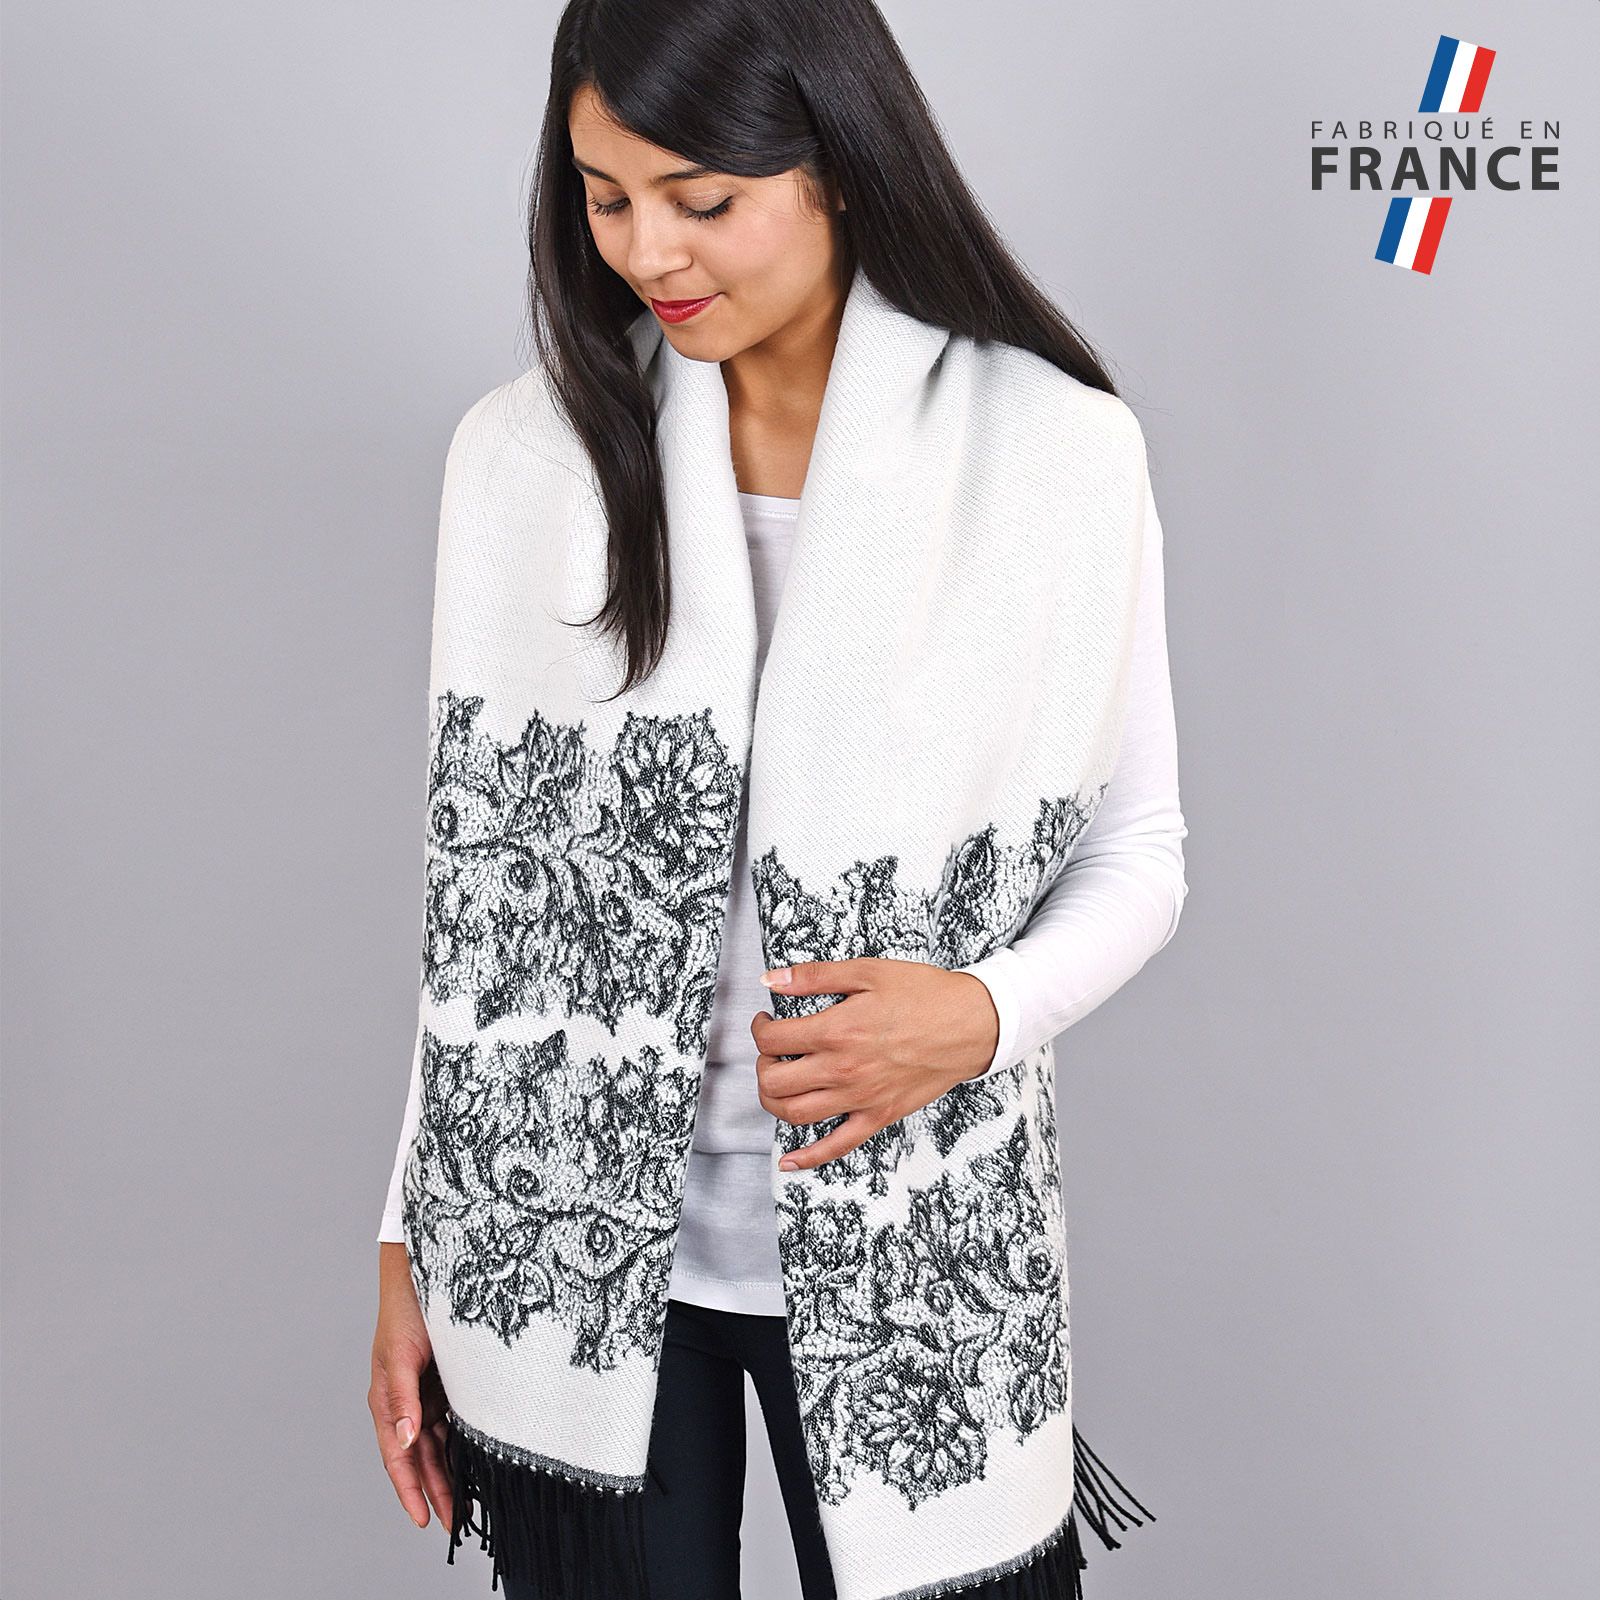 AT-03954-VF16-2-FR-chale-femme-hiver-blanc